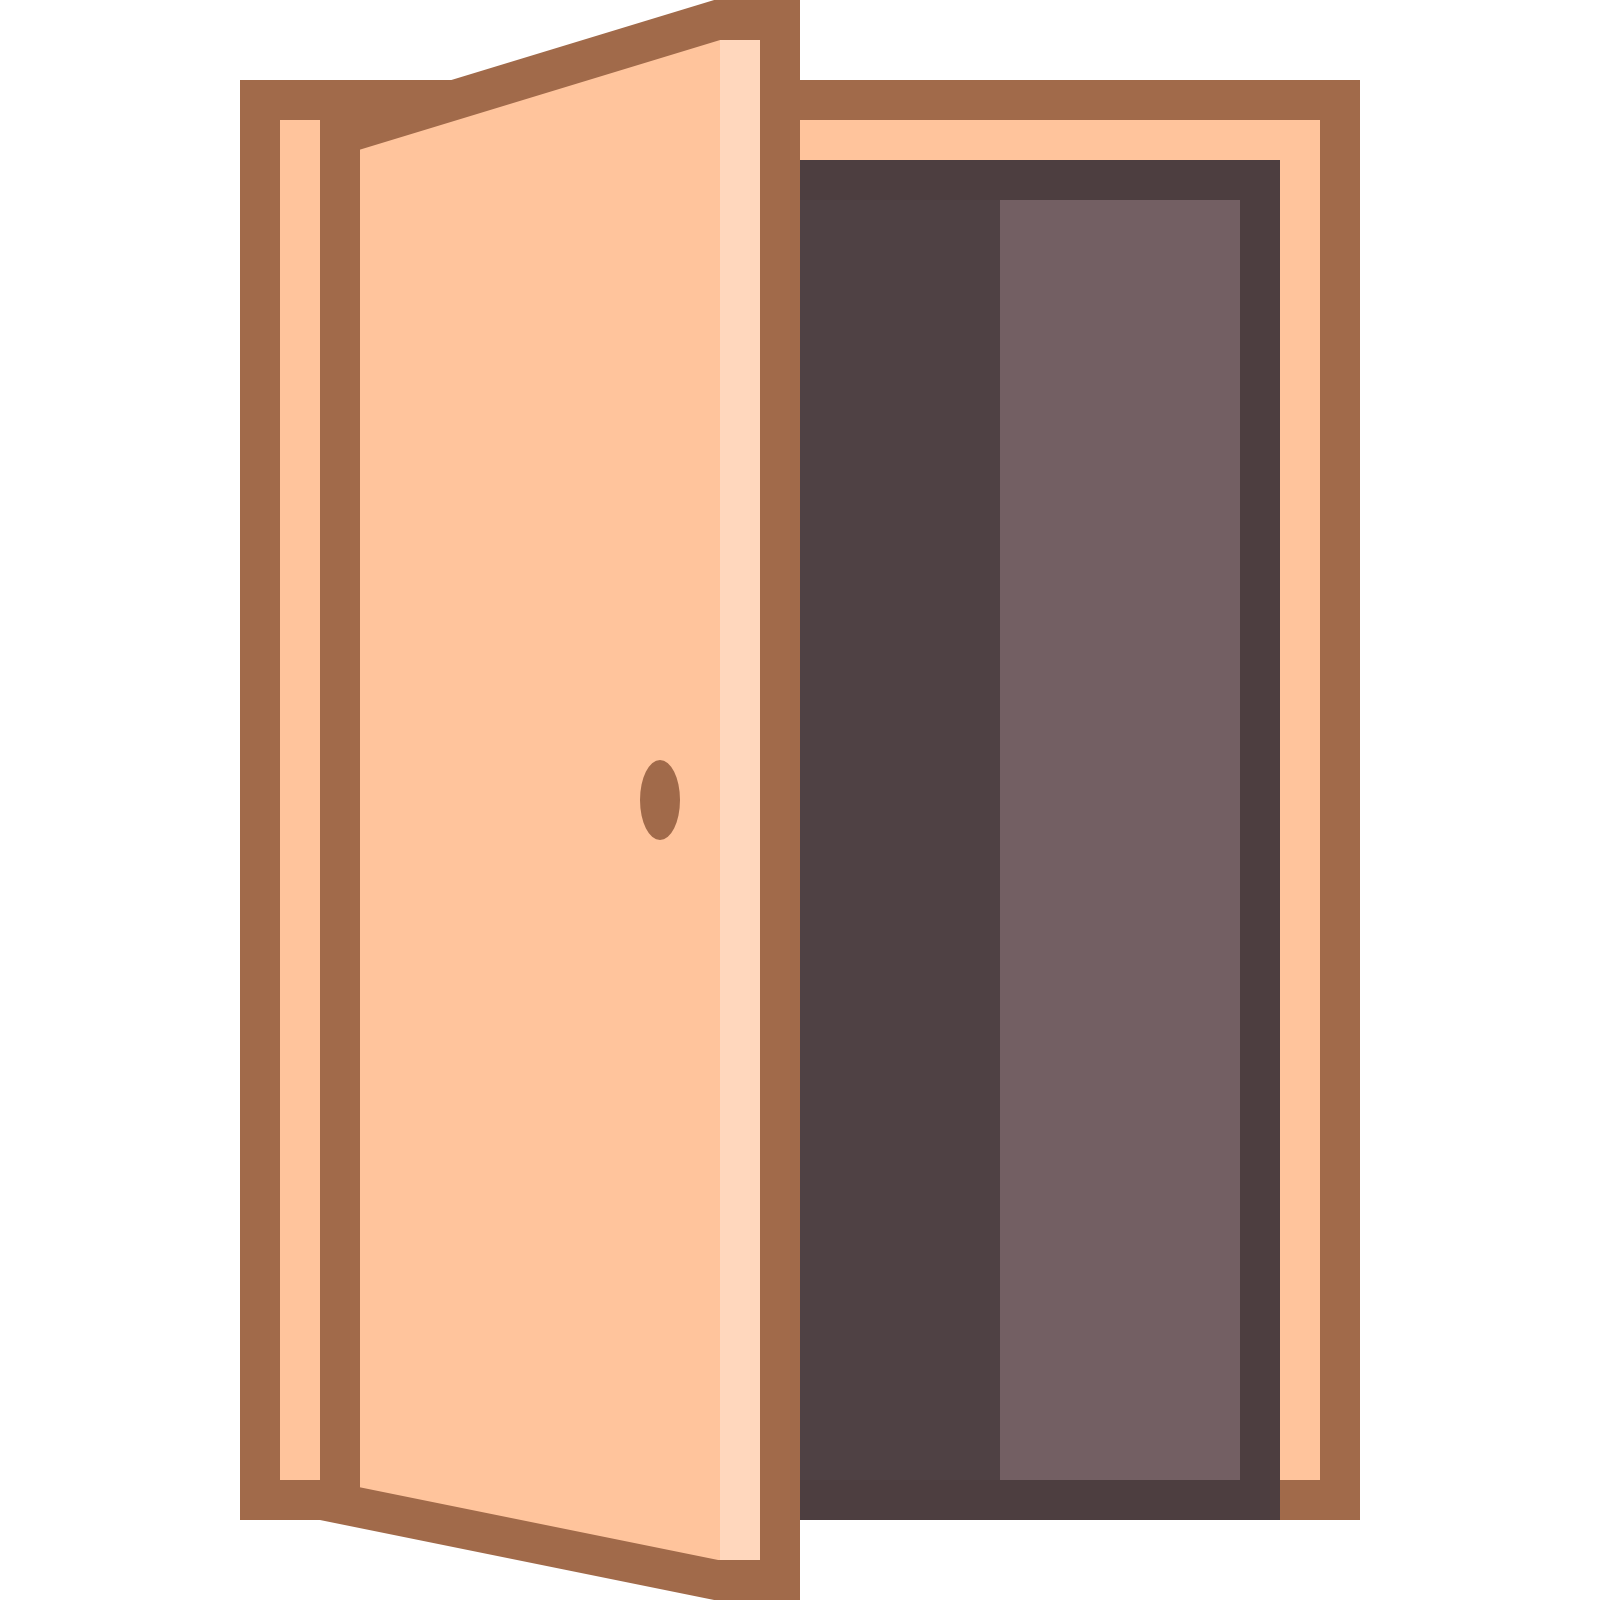 Icon free download at. Clipart door opened door